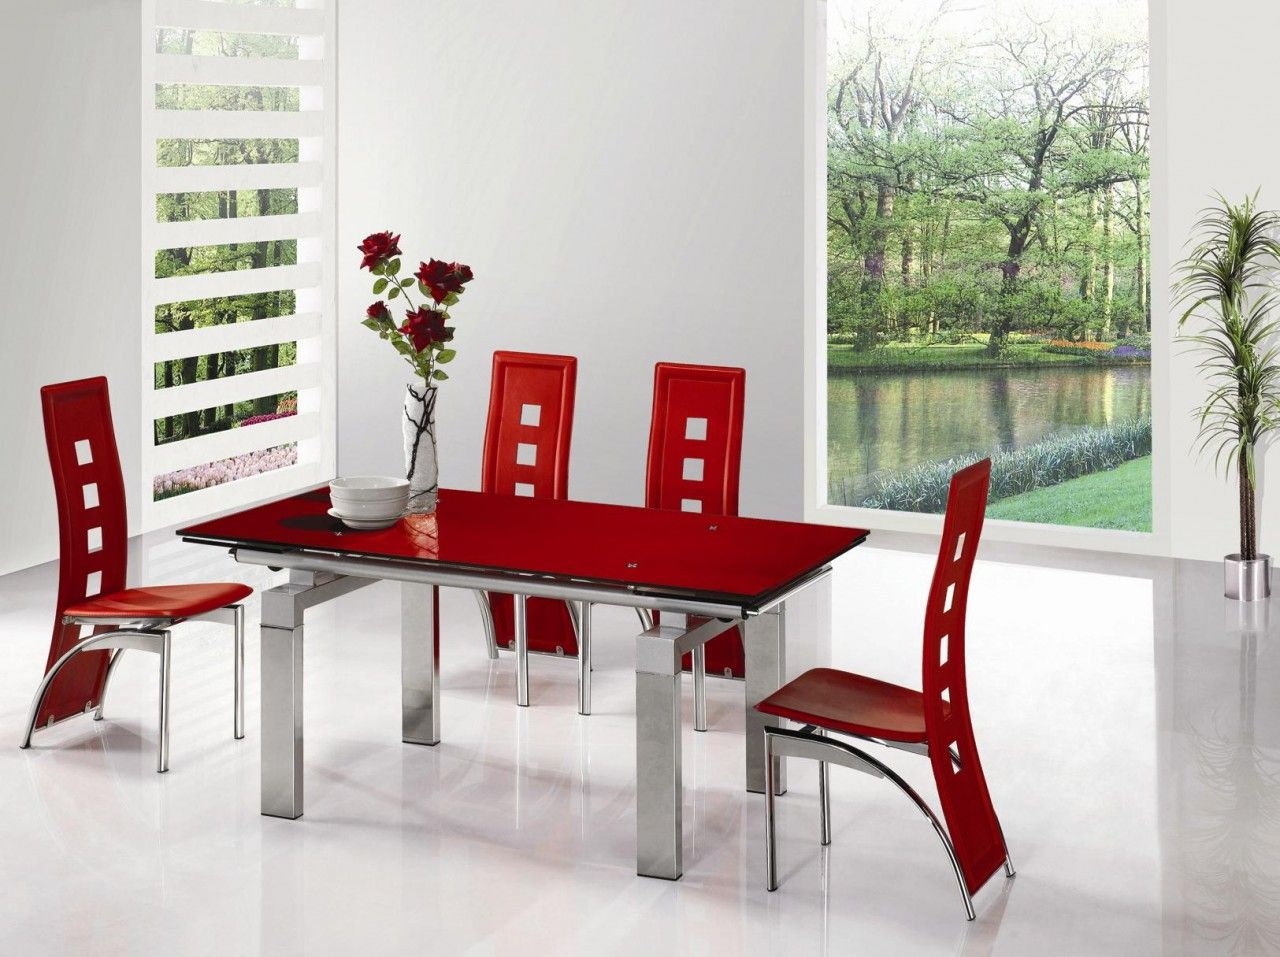 Simplencolorful Httpsgooglnoxif9  Interior Design Impressive Dining Room Chairs Red Decorating Design